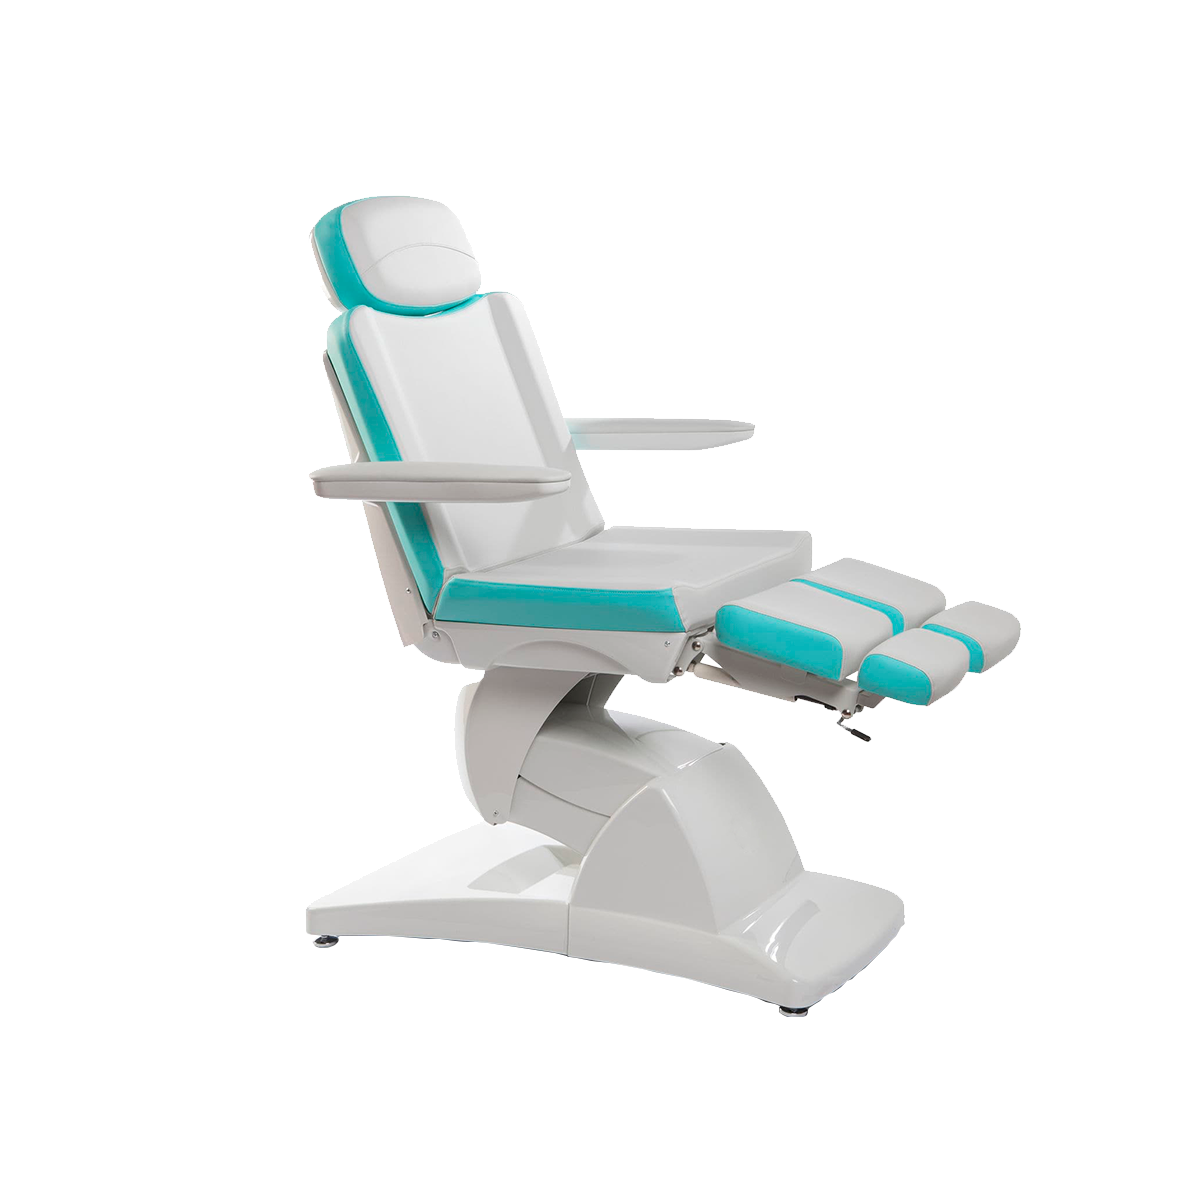 Podiatry examination chairs